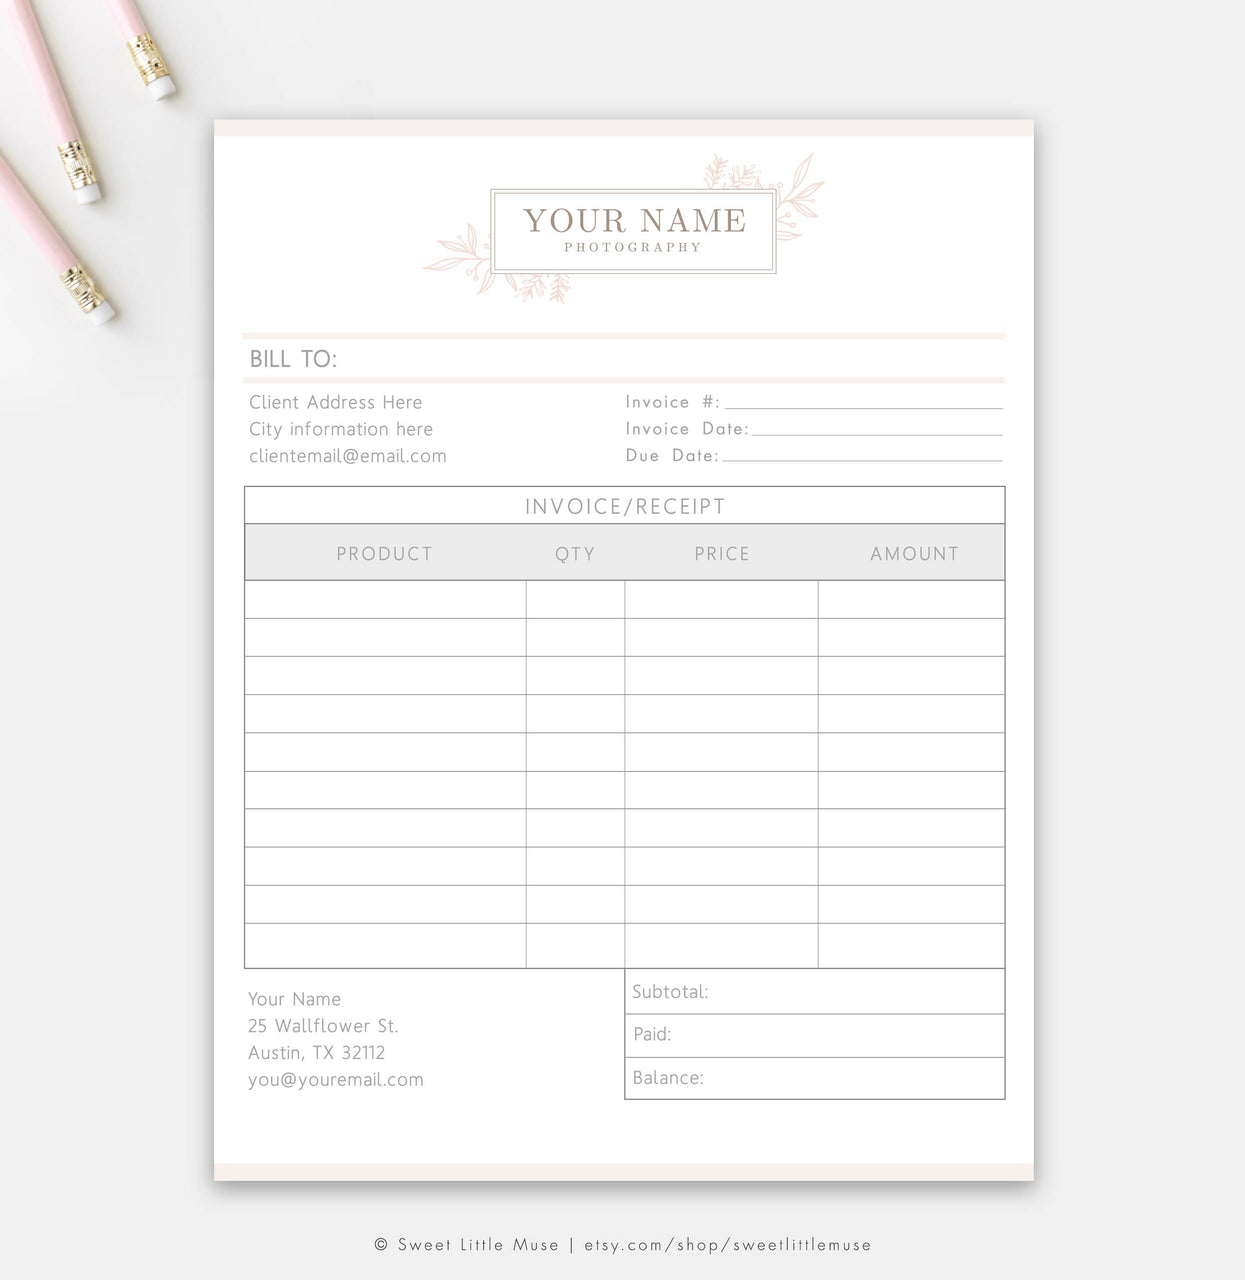 Floral Invoice - Photography Business Form